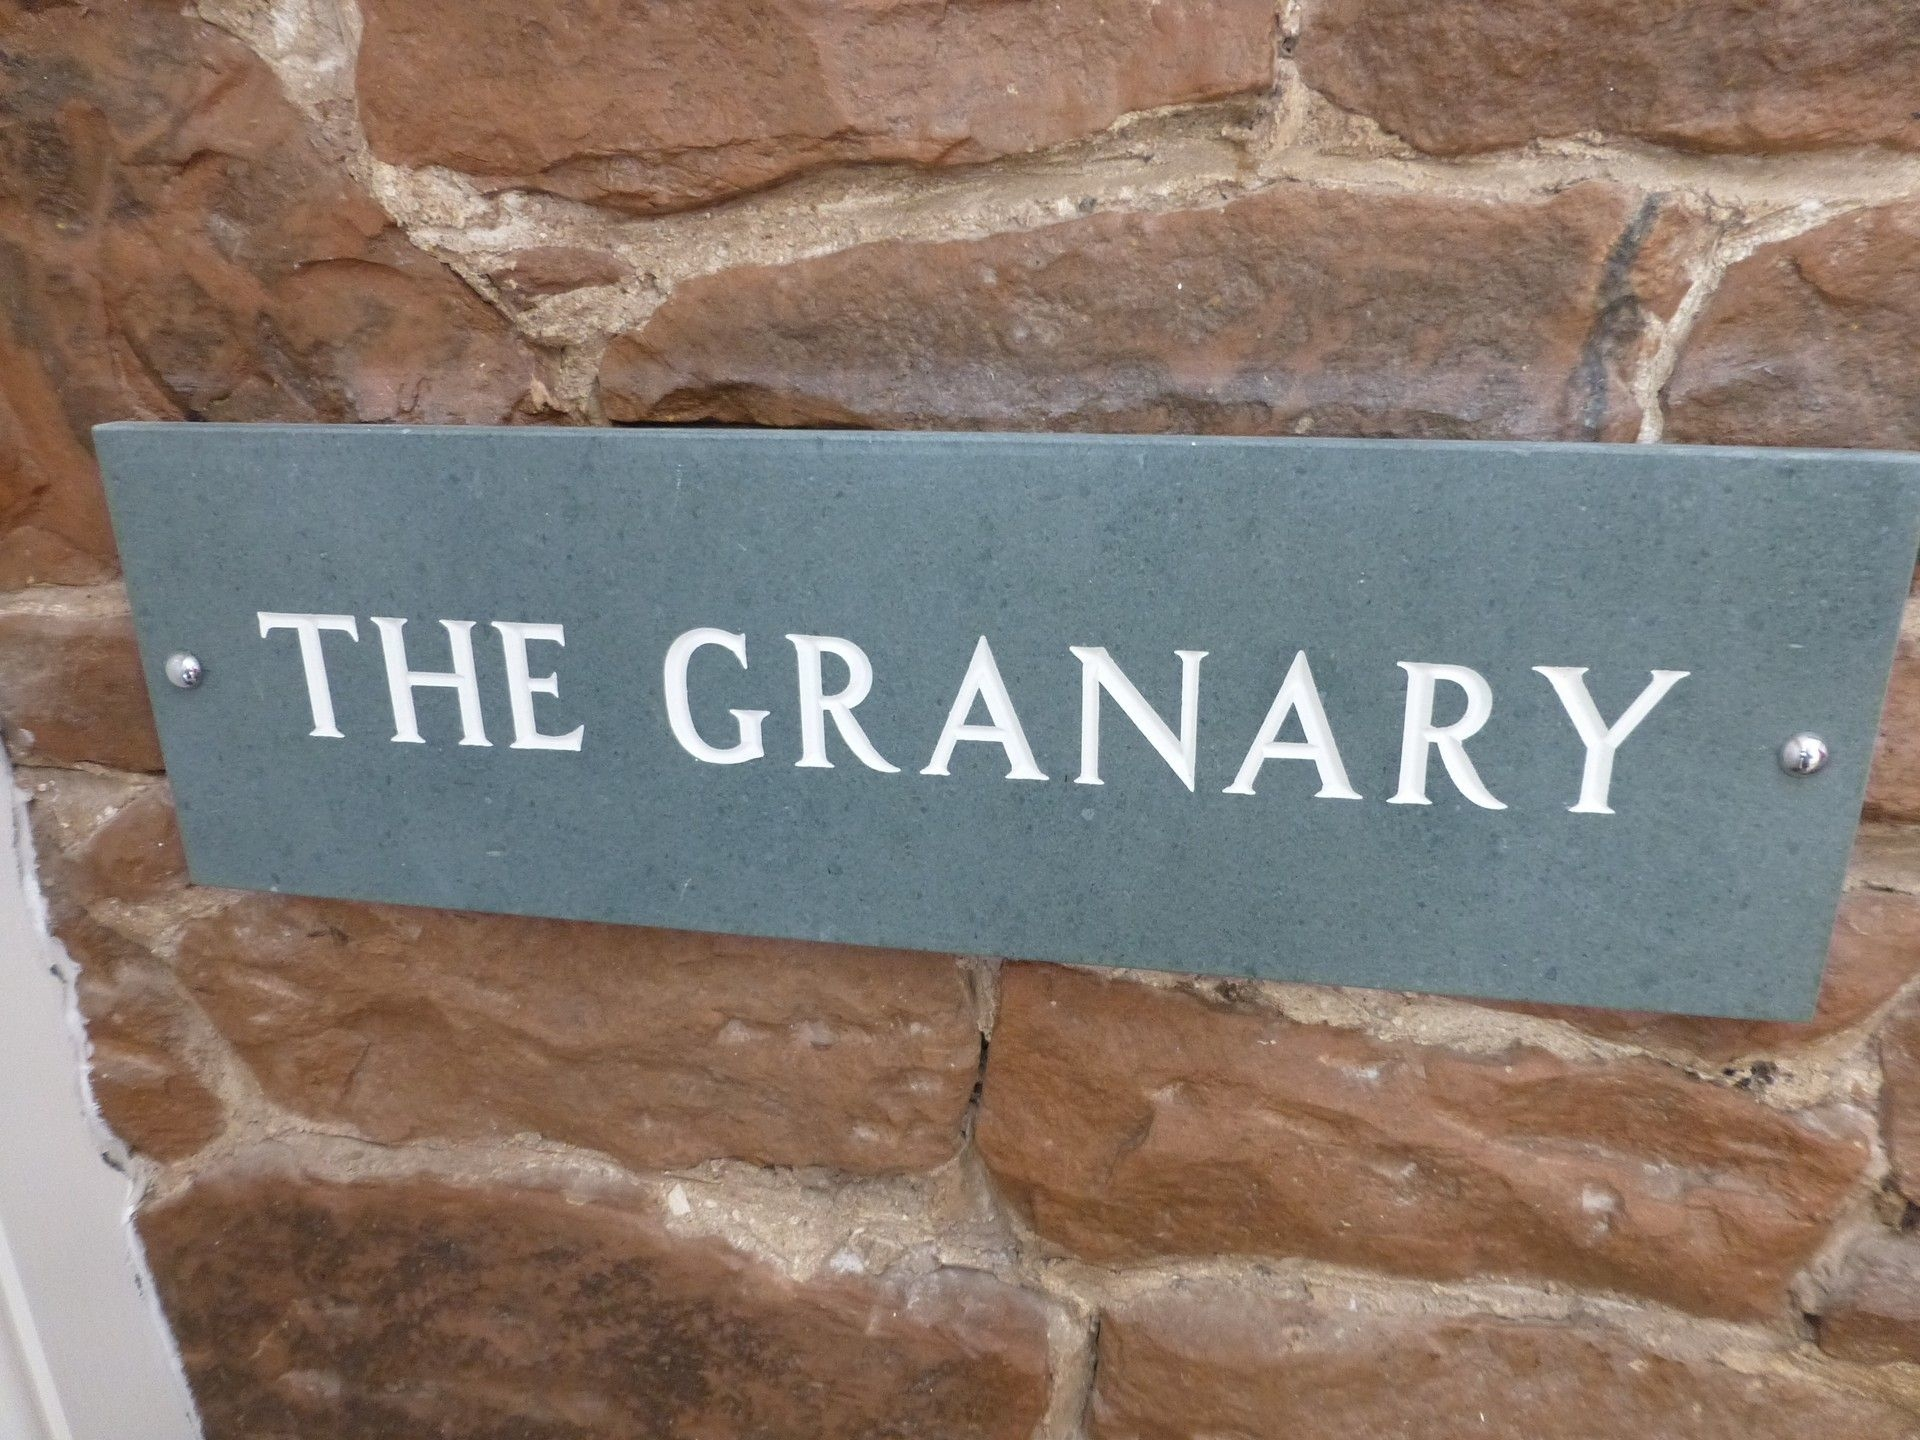 The Granary Image 13